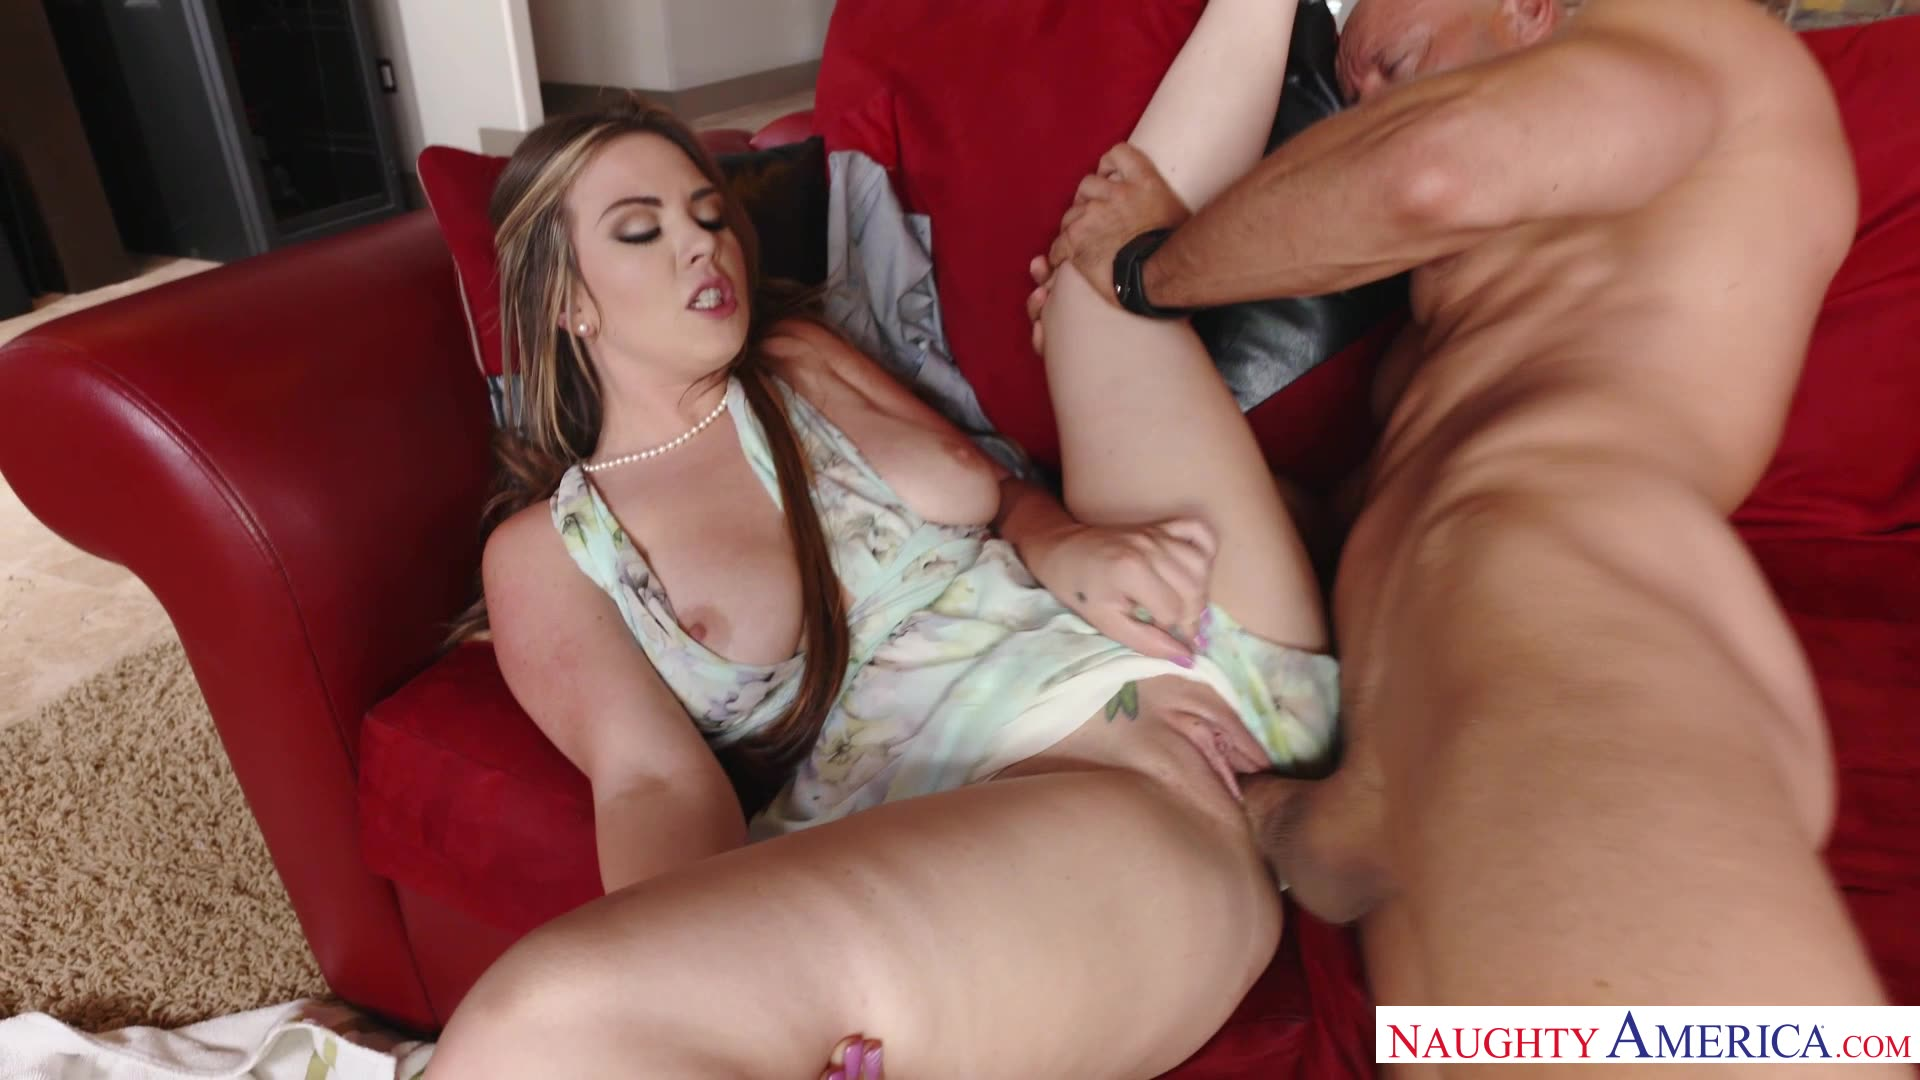 Teensloveanal hot babe assfucked by her step brother